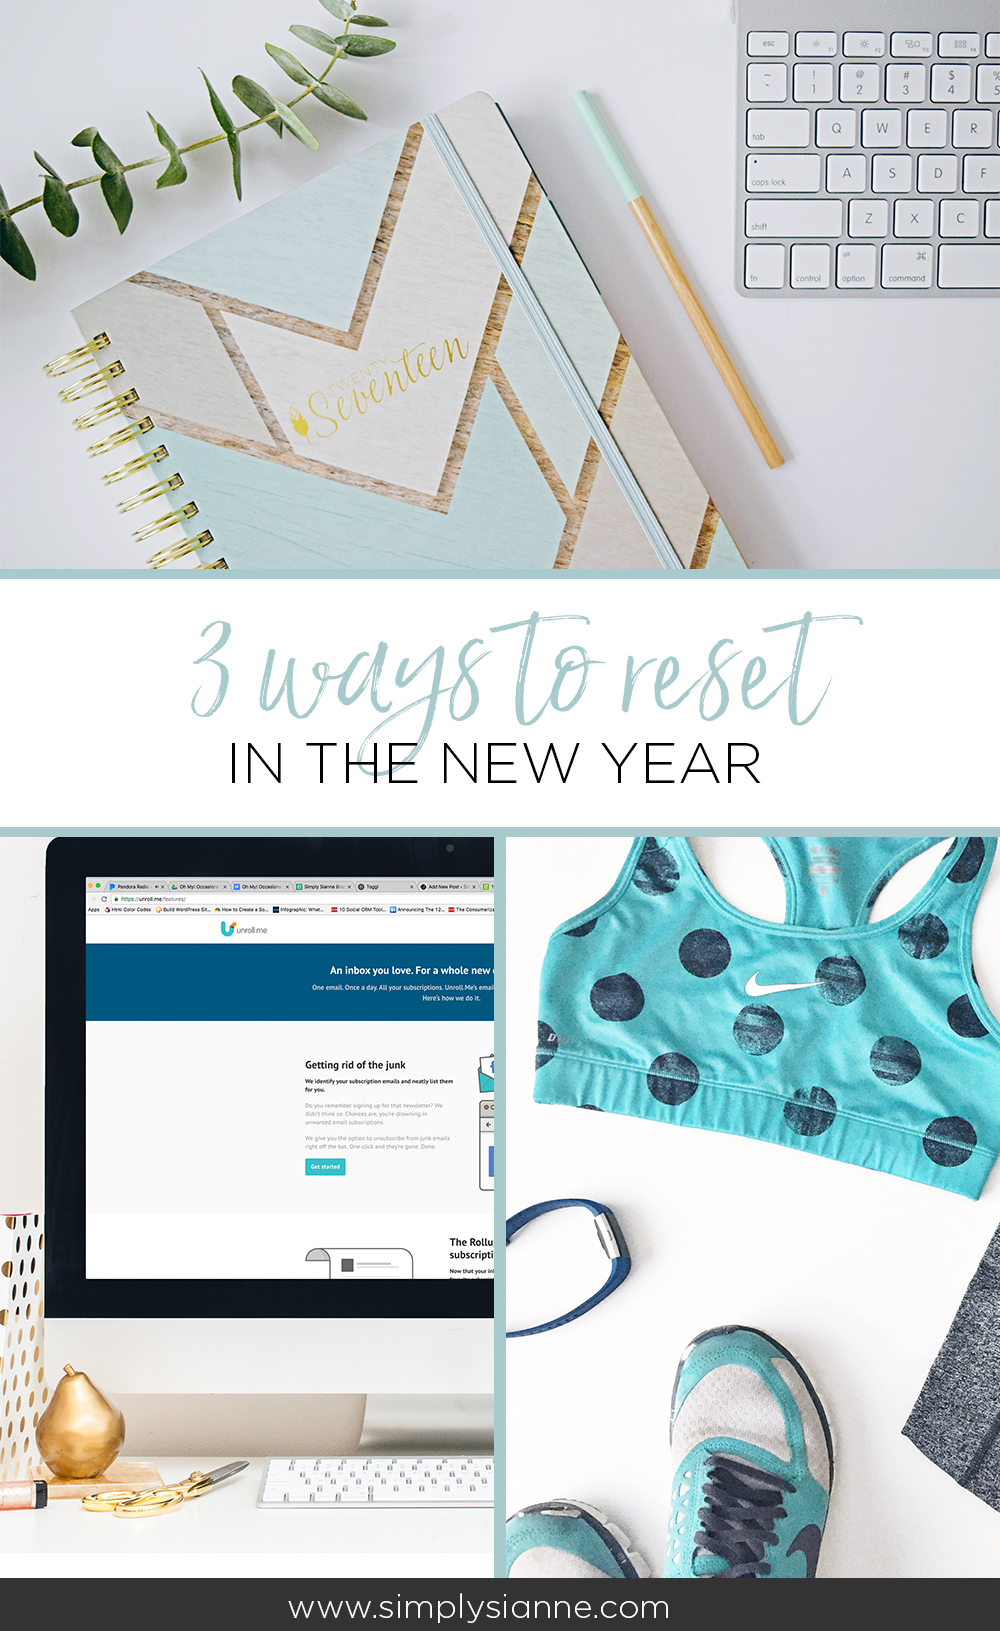 Start the new year with a fresh start with these 3 ways to reset!